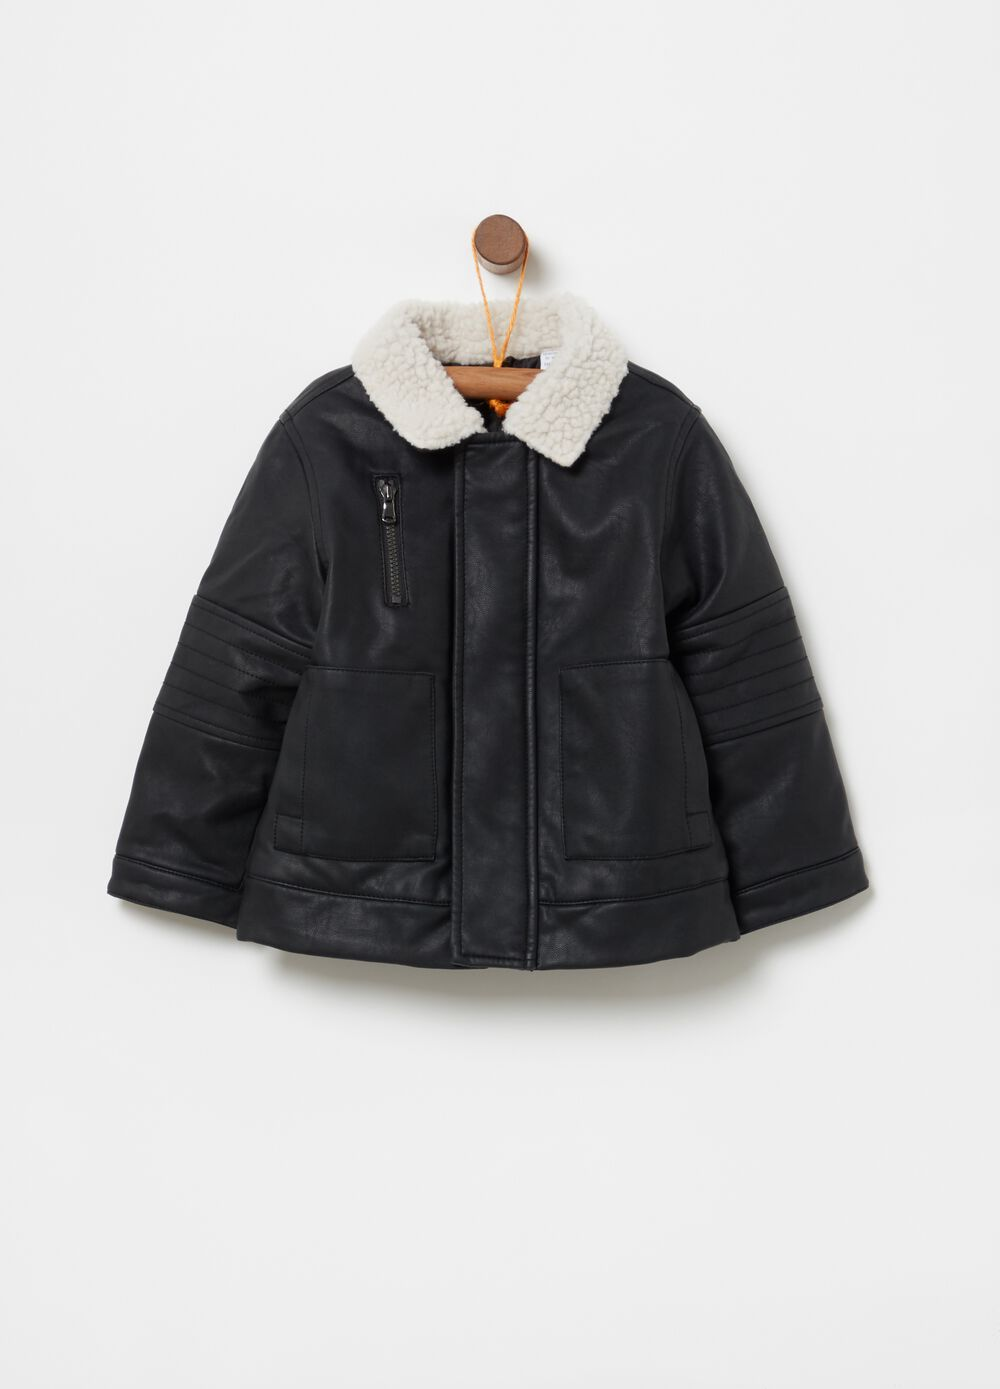 Leather-look jacket with collar